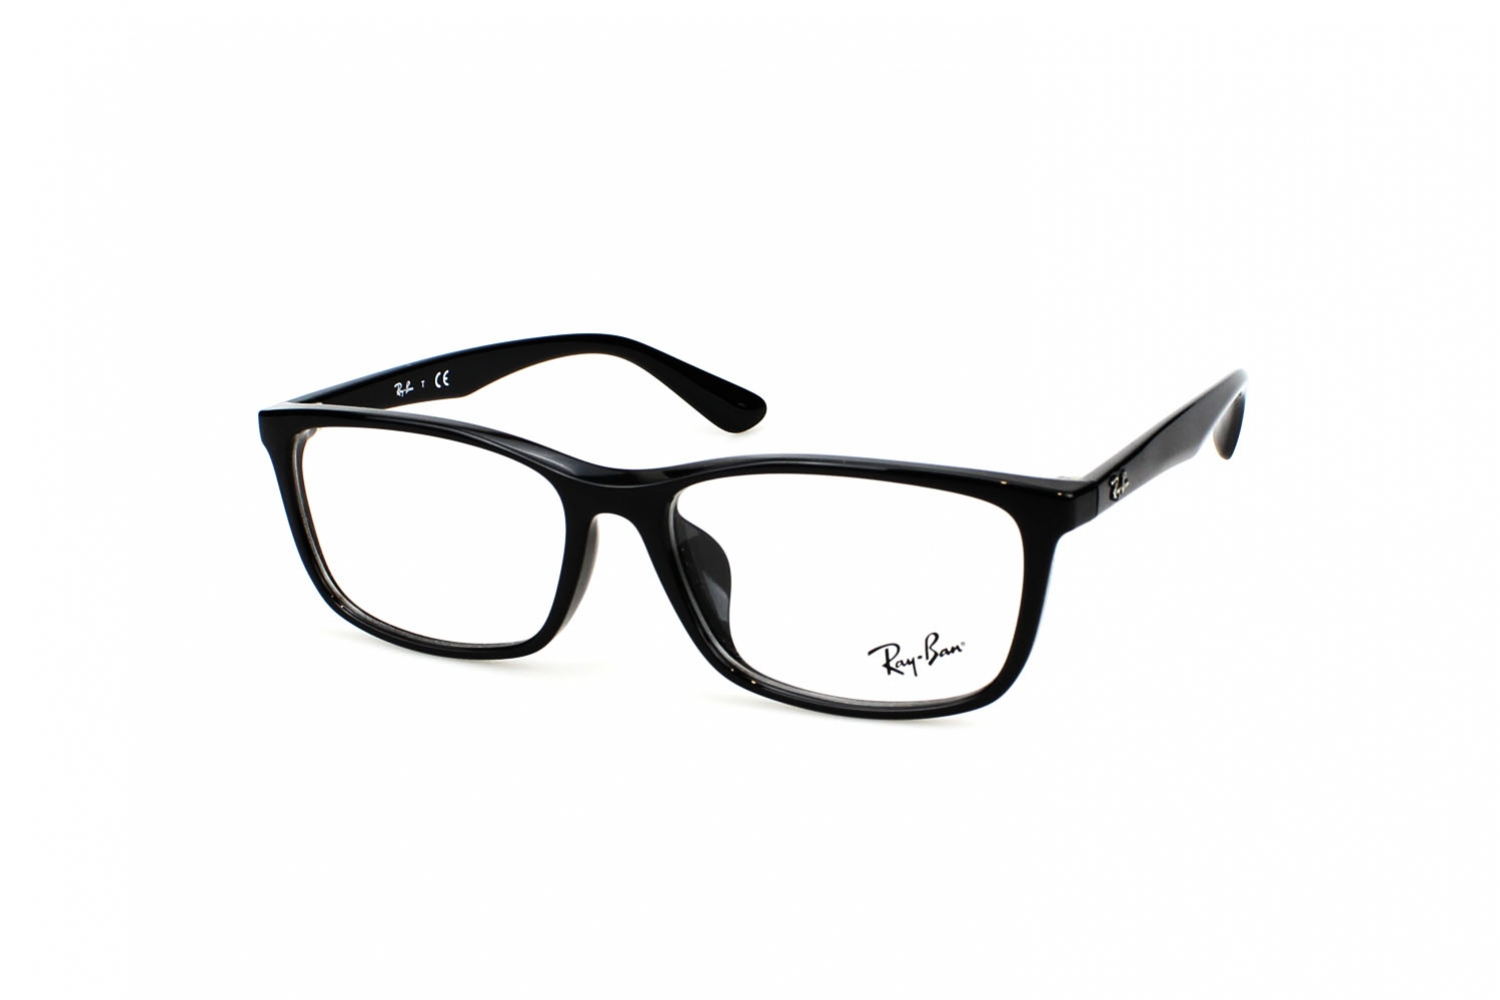 Rayban RB 7102D 2000 56